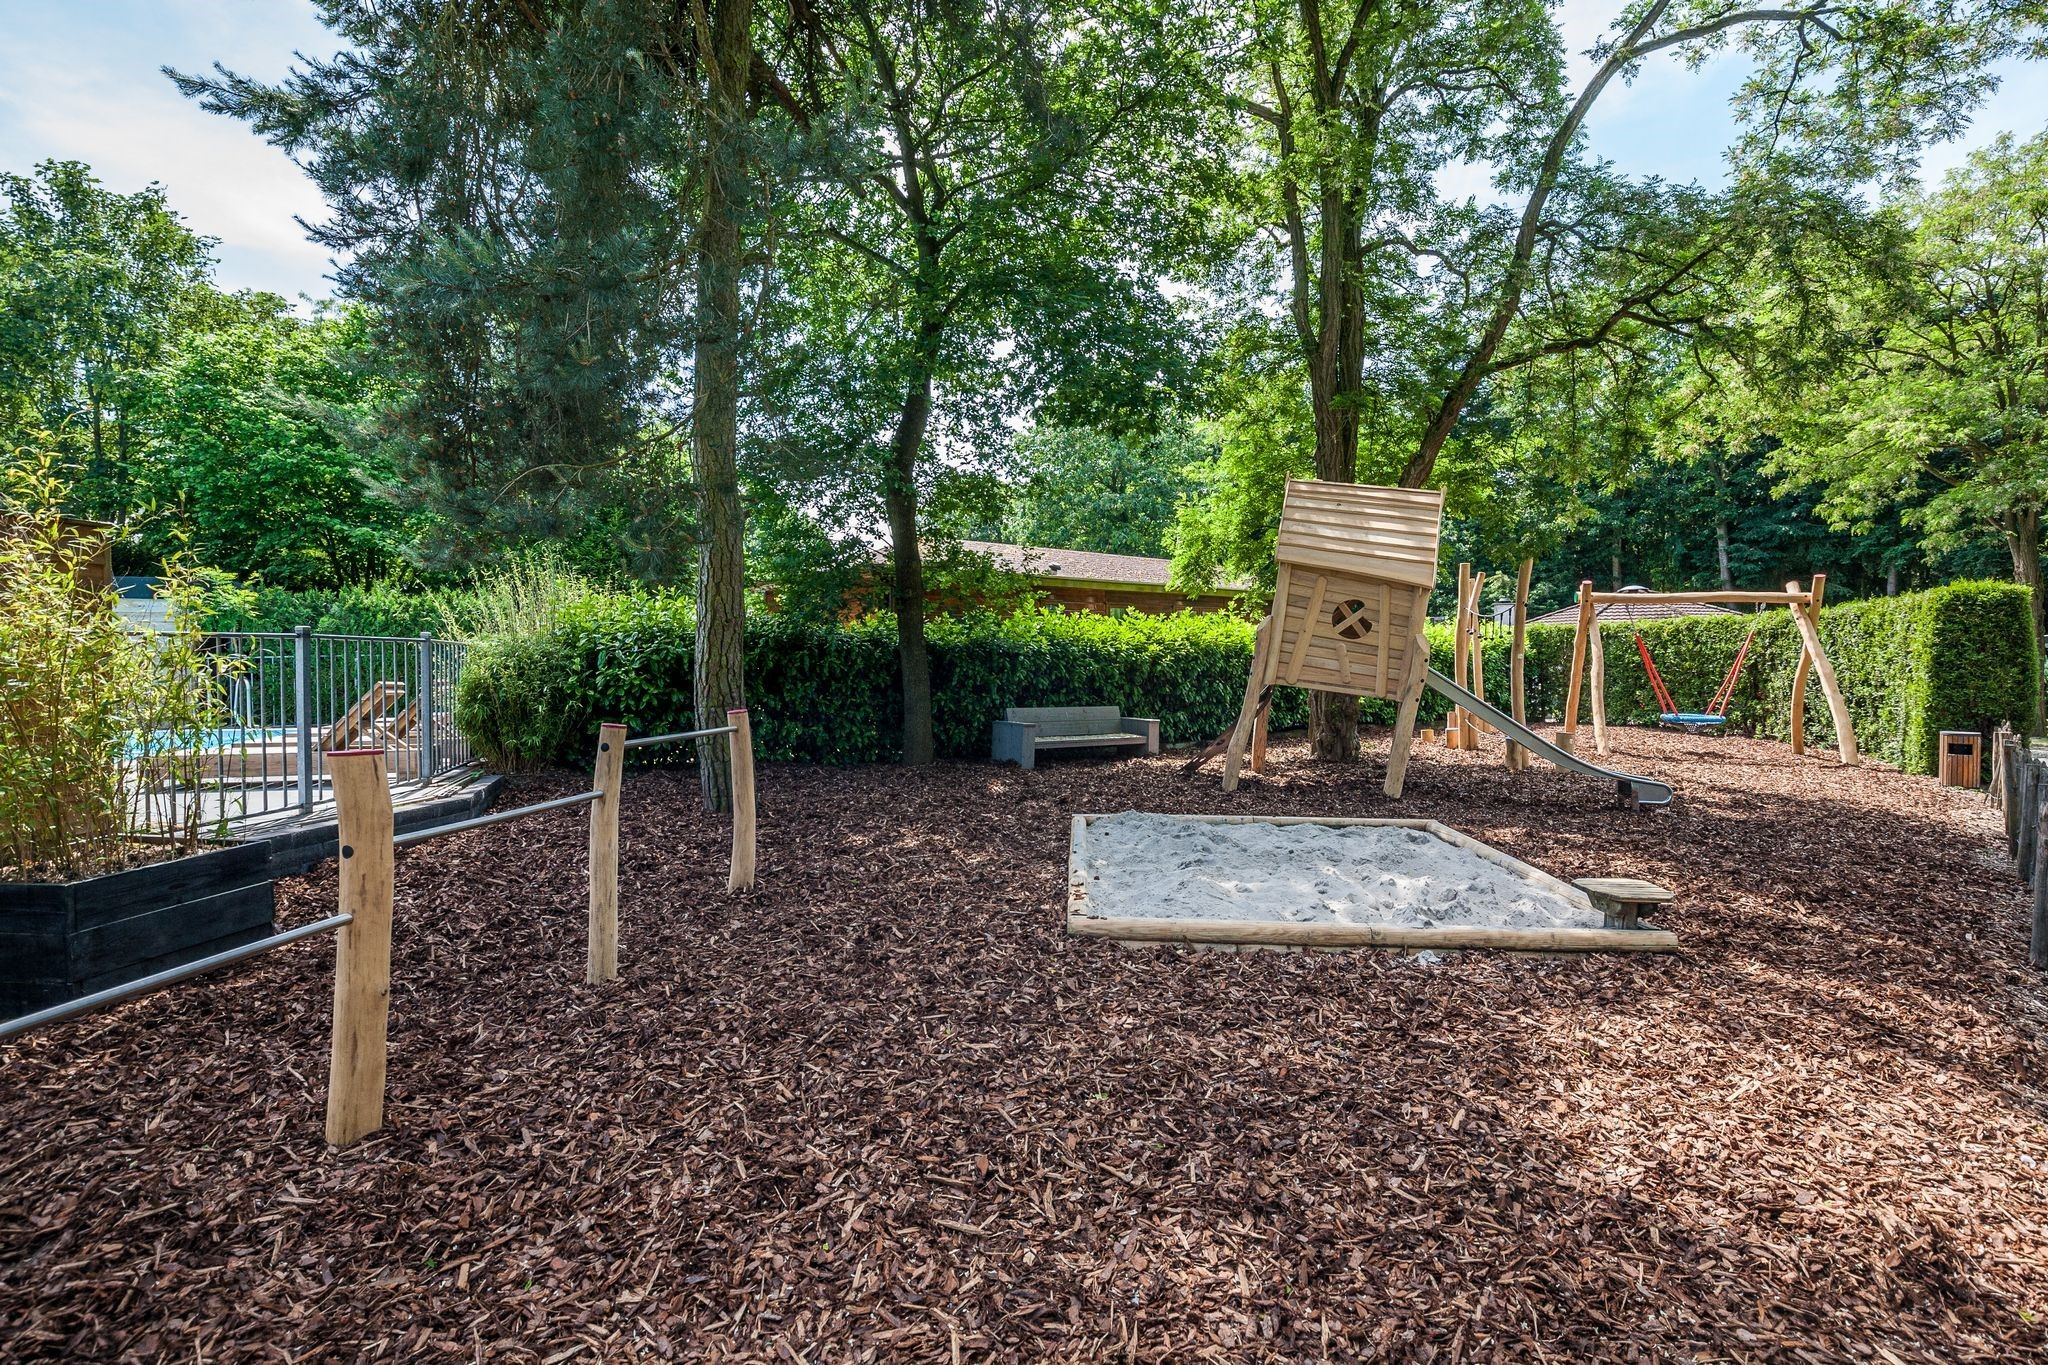 Let's play at the playground at Bungalowpark Het Verscholen Dorp